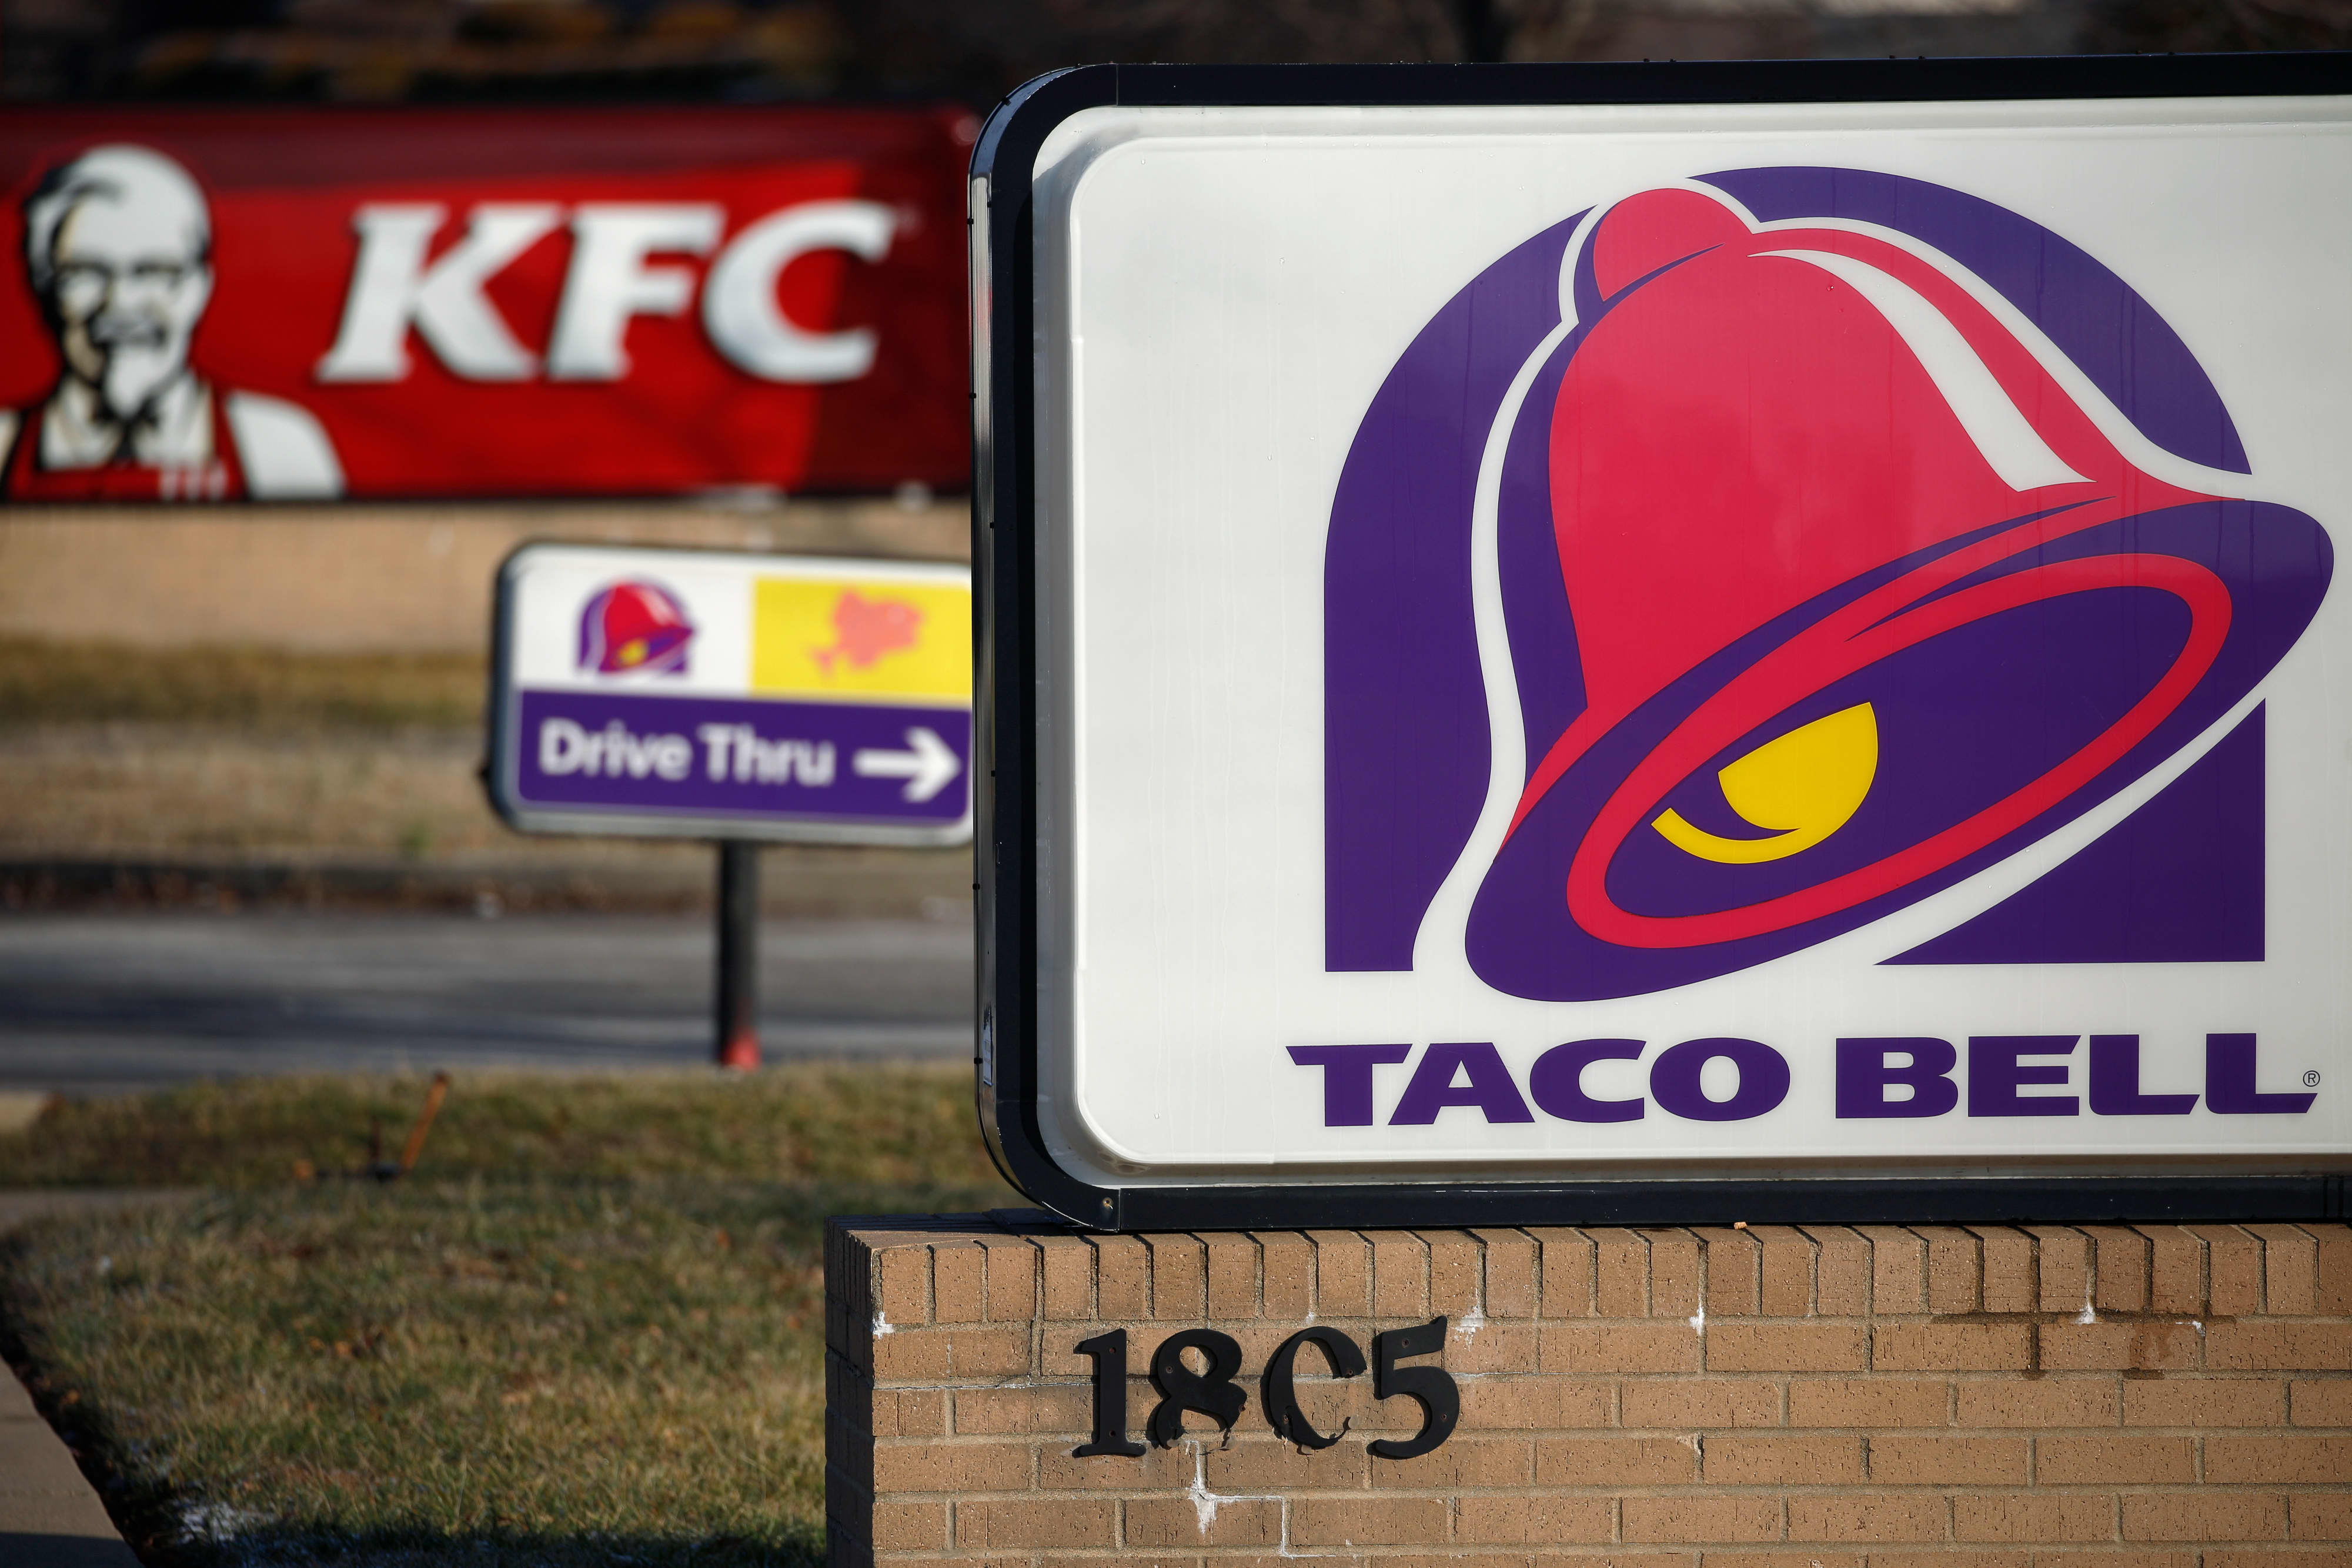 Yum Brands tops earnings estimates as sales rebound at Taco Bell, KFC and Pizza Hut